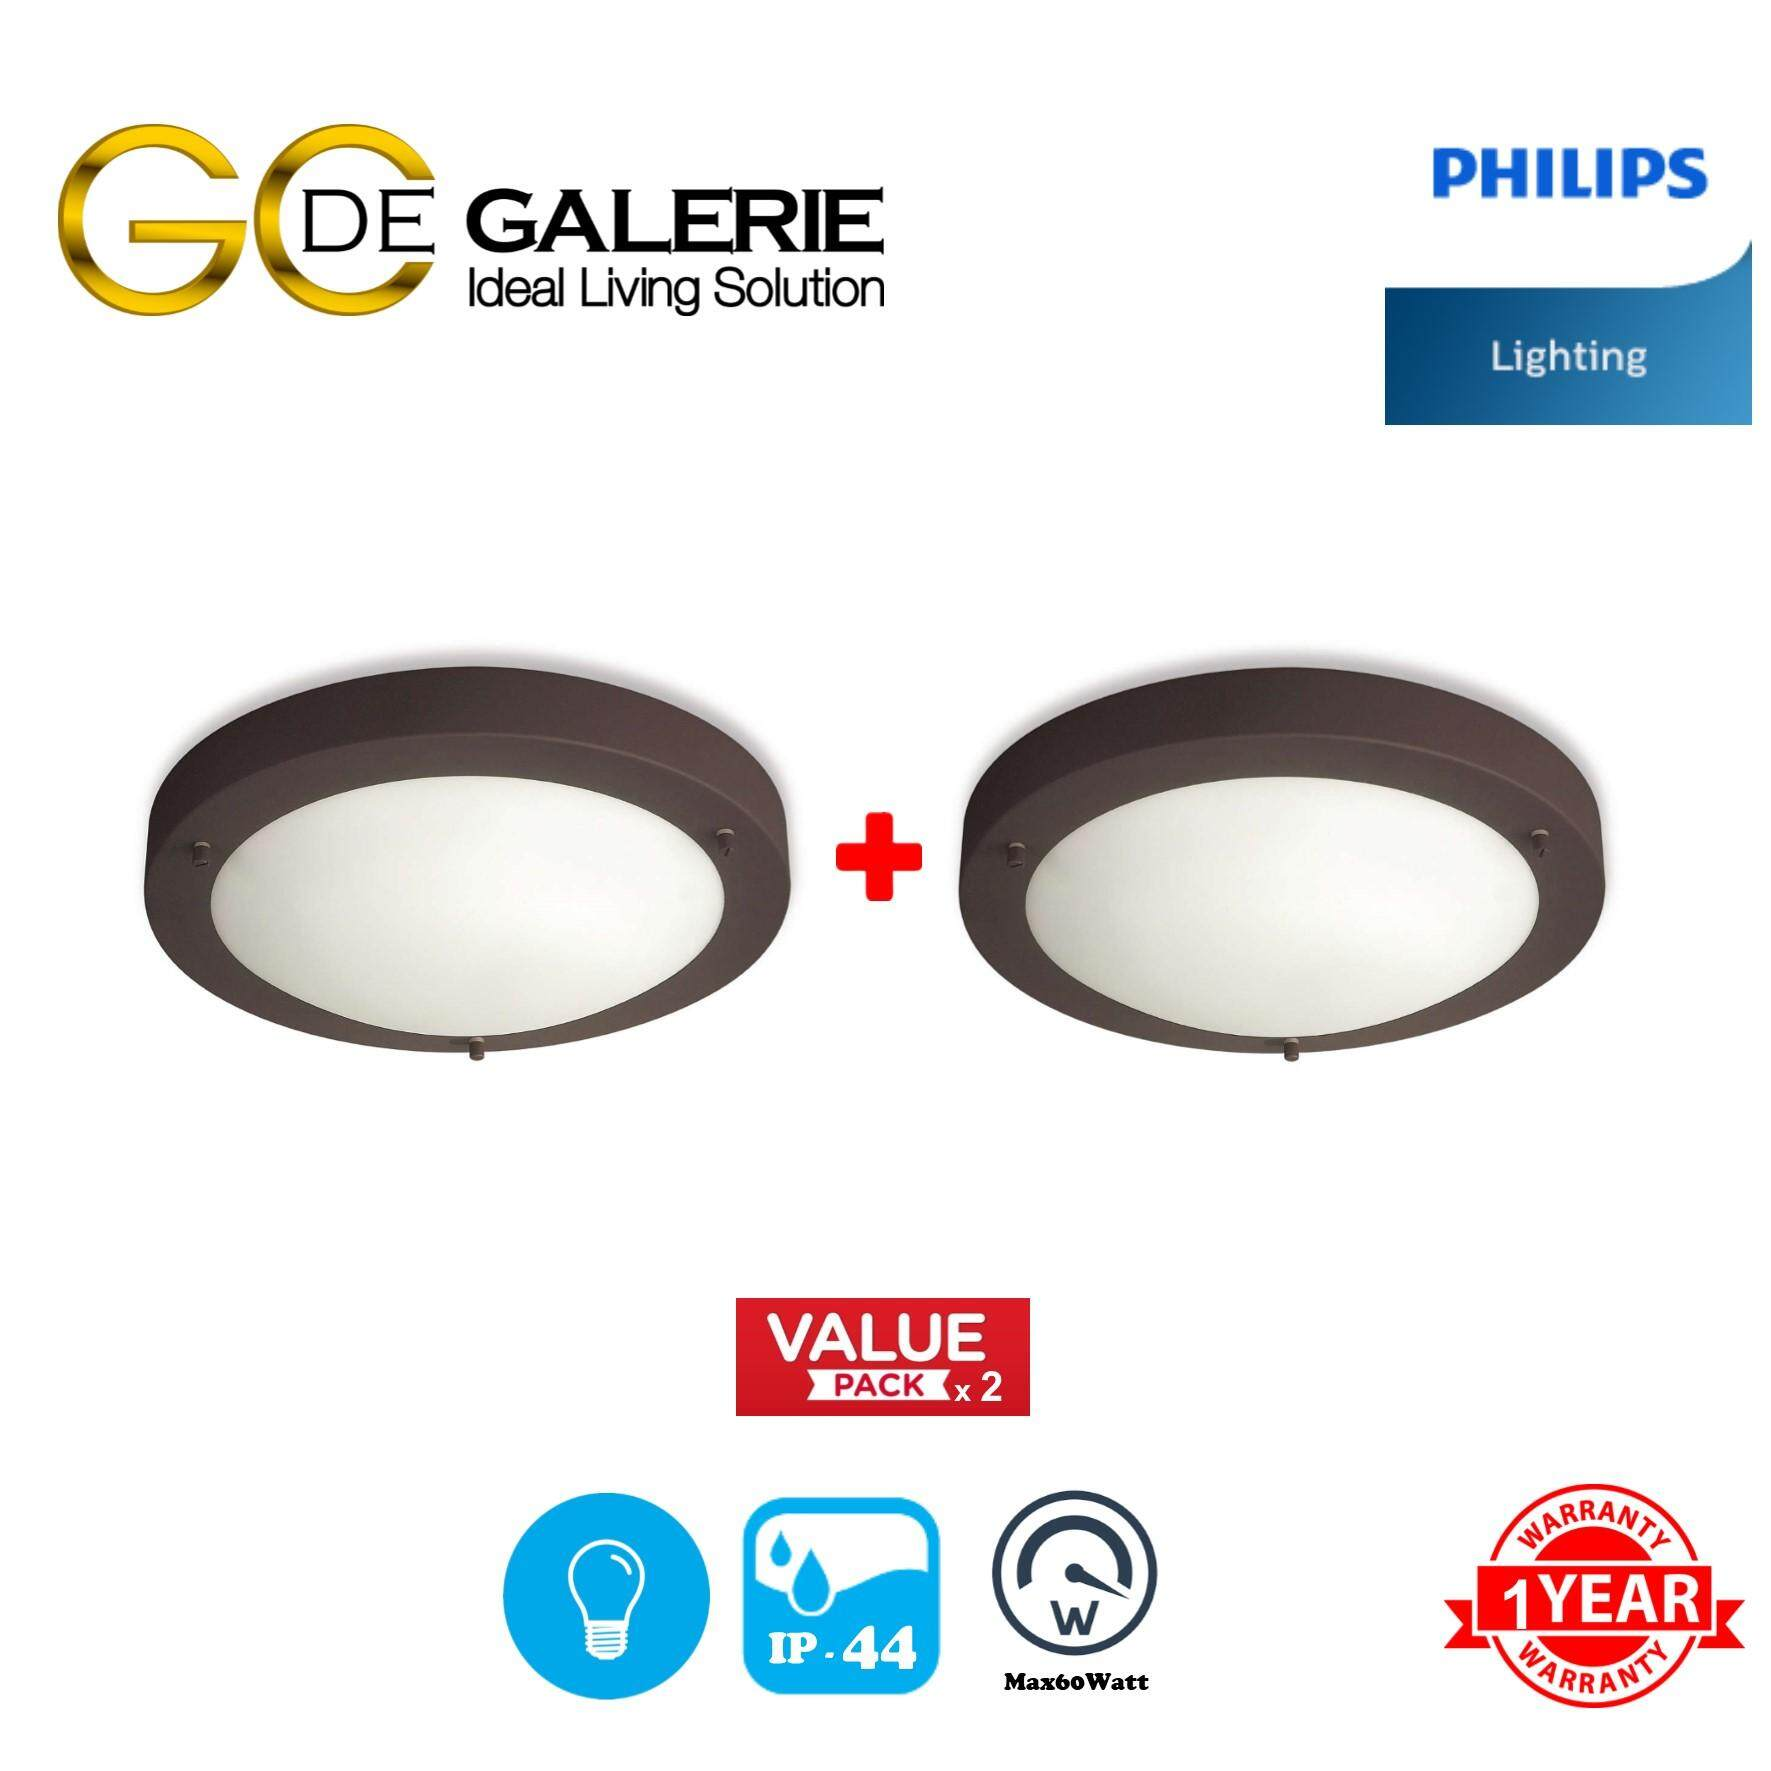 WALL LIGHT OUTDOOR PHILIPS 32010 ECB300 DGY/ANTRACIT (2 PACK)